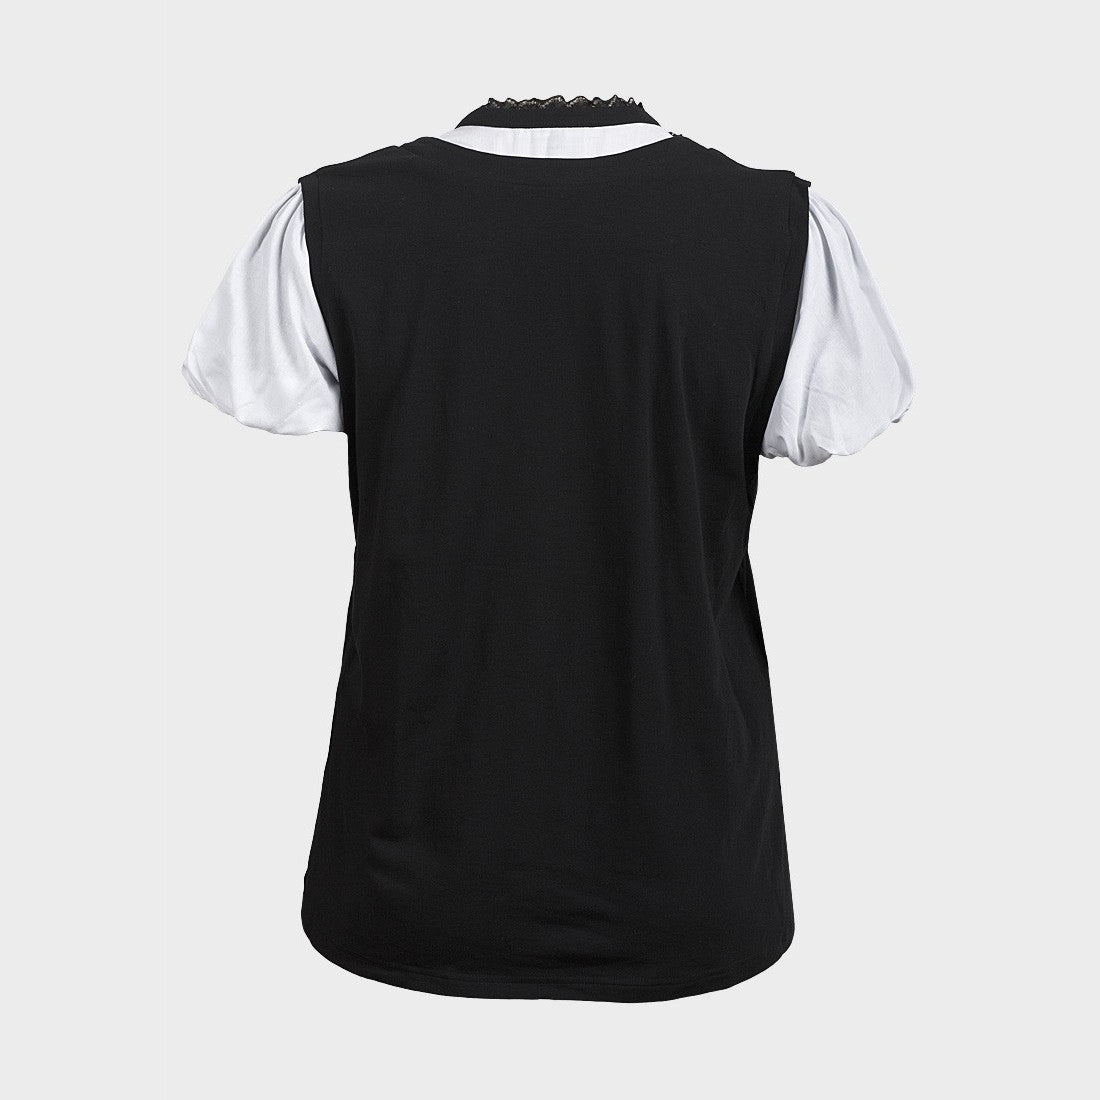 Sebix - Black & White Victorian Goth Cotton Short Sleeve Formal Top - Back